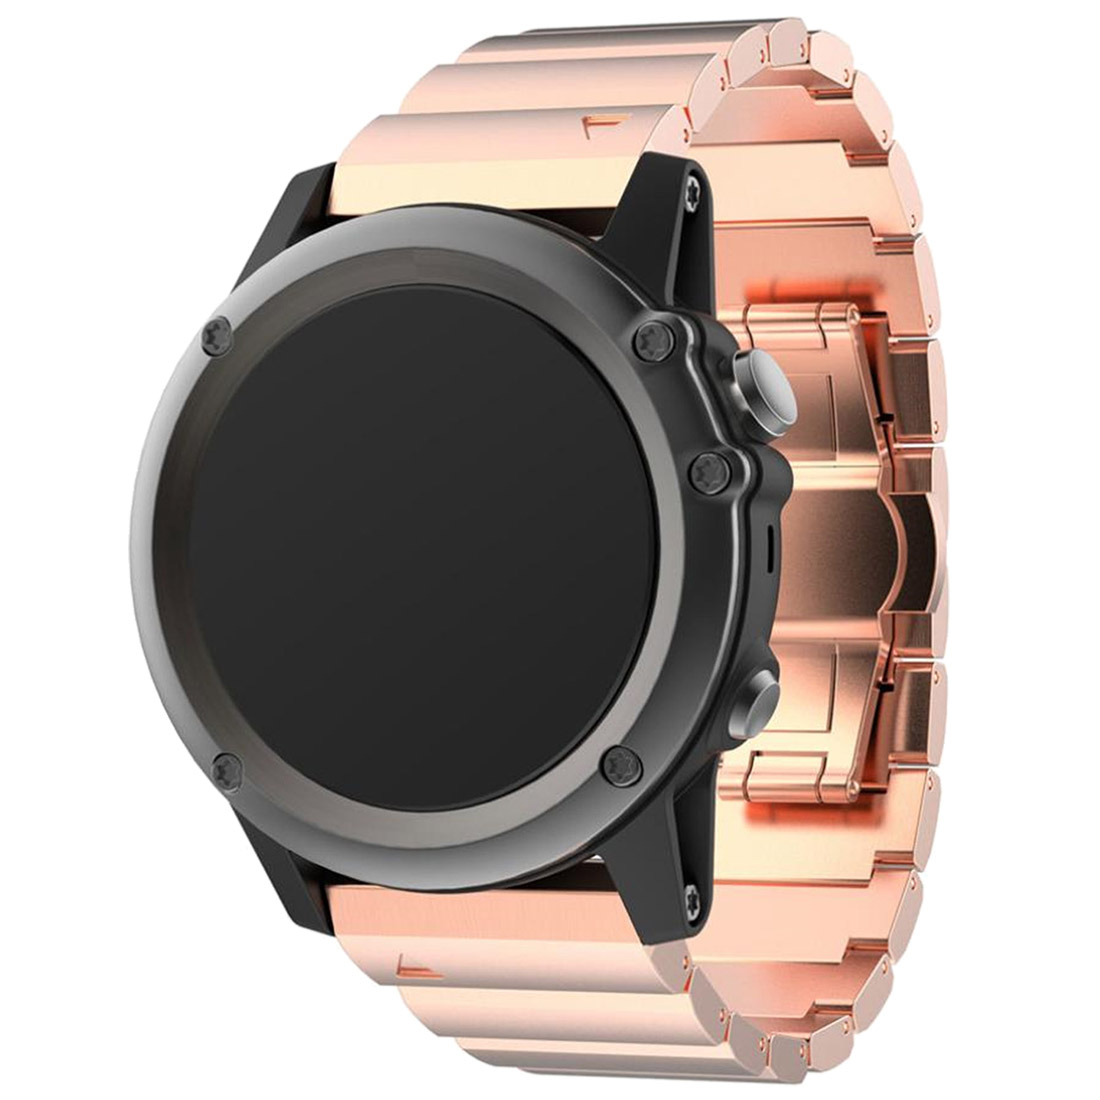 Metal Bracelet Stainless Steel Watch Wrist Band Strap For Garmin Fenix 3 HR Colour Rose Gold